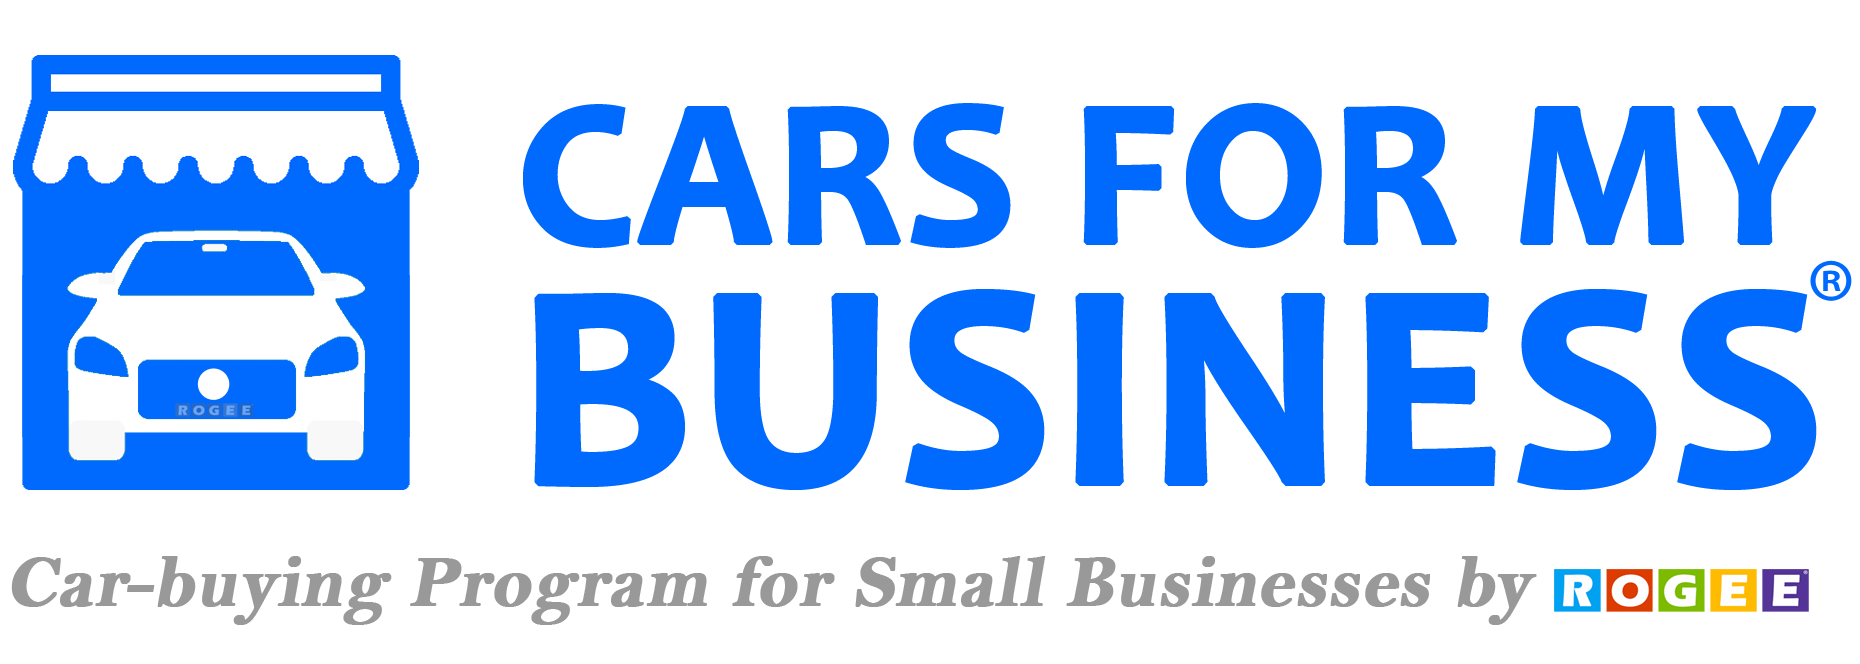 CARS FOR MY BUSINESS | Car-Buying Program for Small Business | Powered by ROGEE